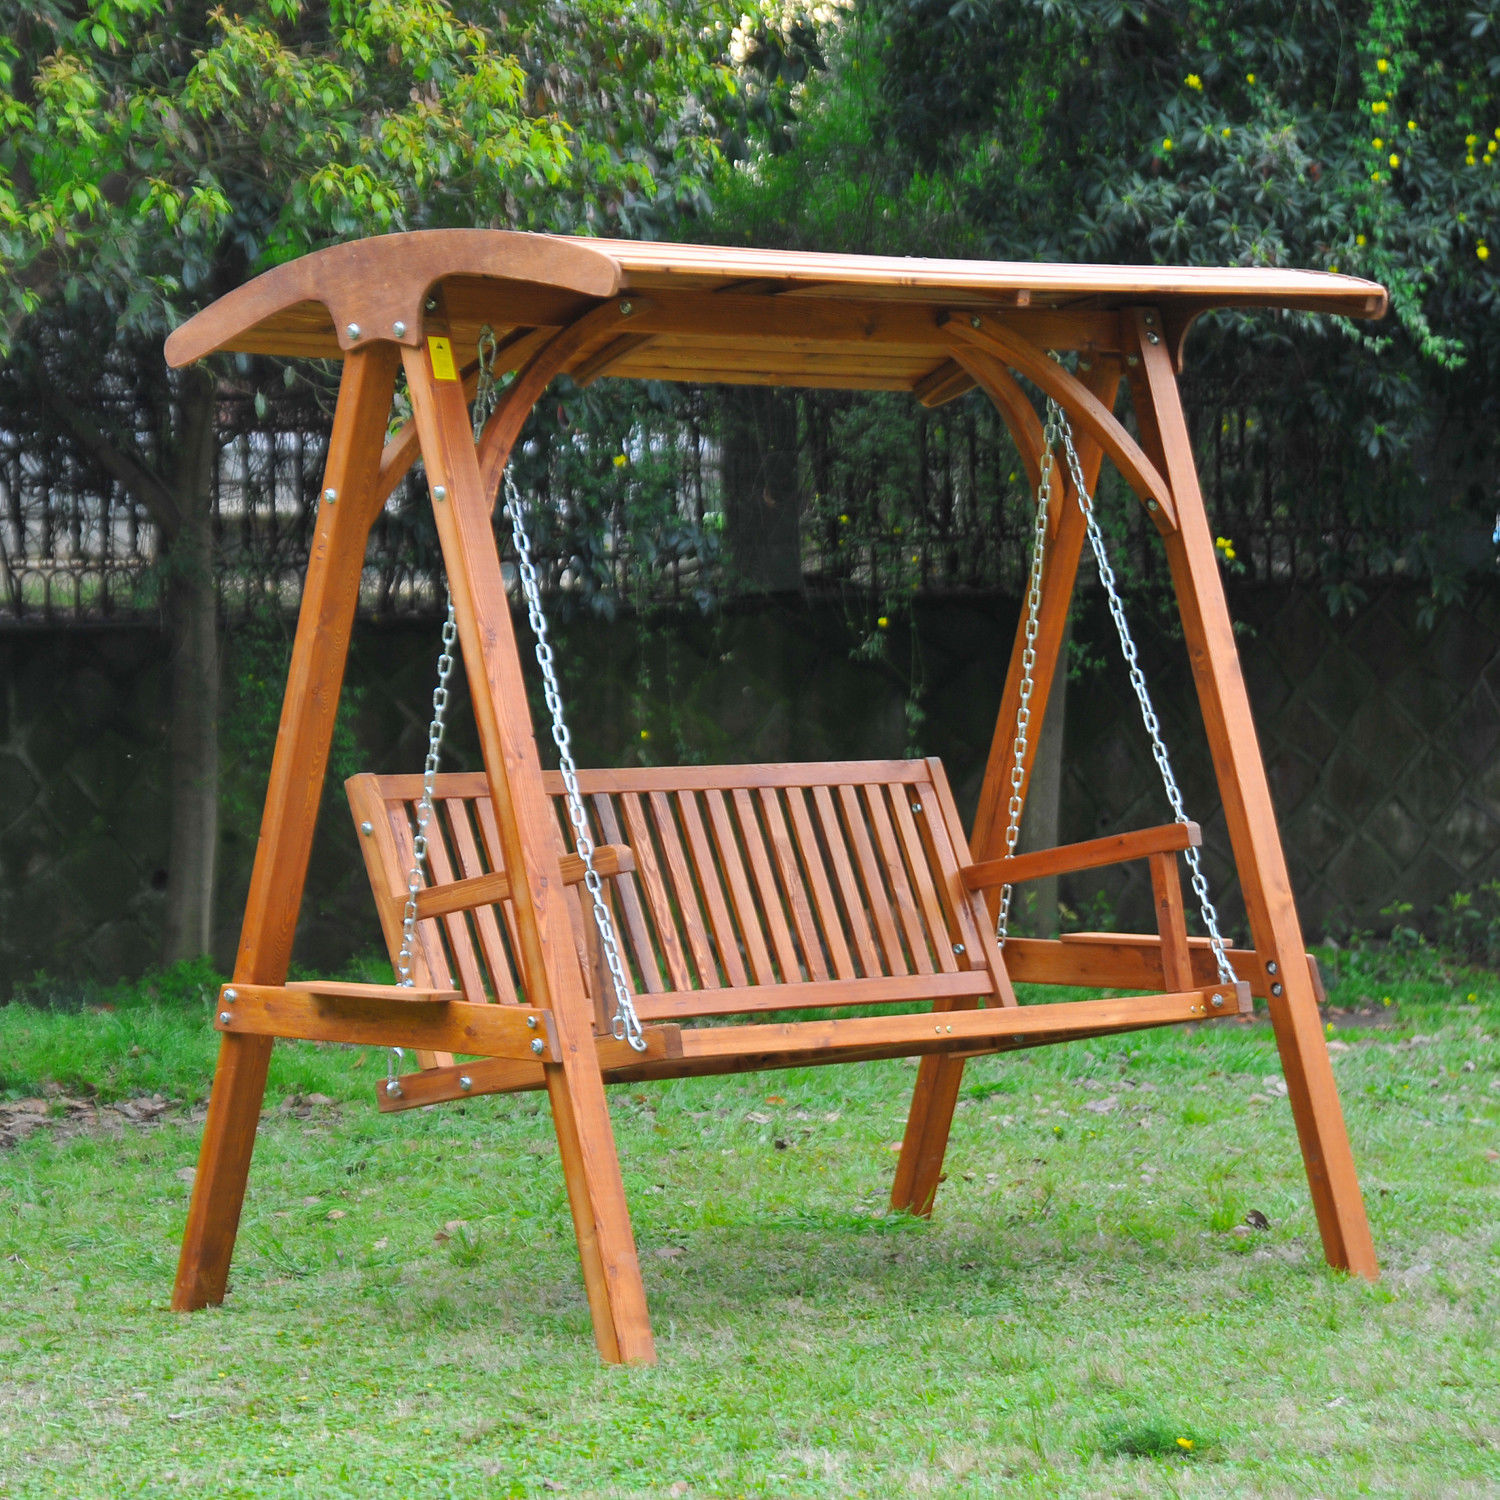 Patio Swing Chair Outsunny Wooden Garden Swing Chair Seat Hammock Bench